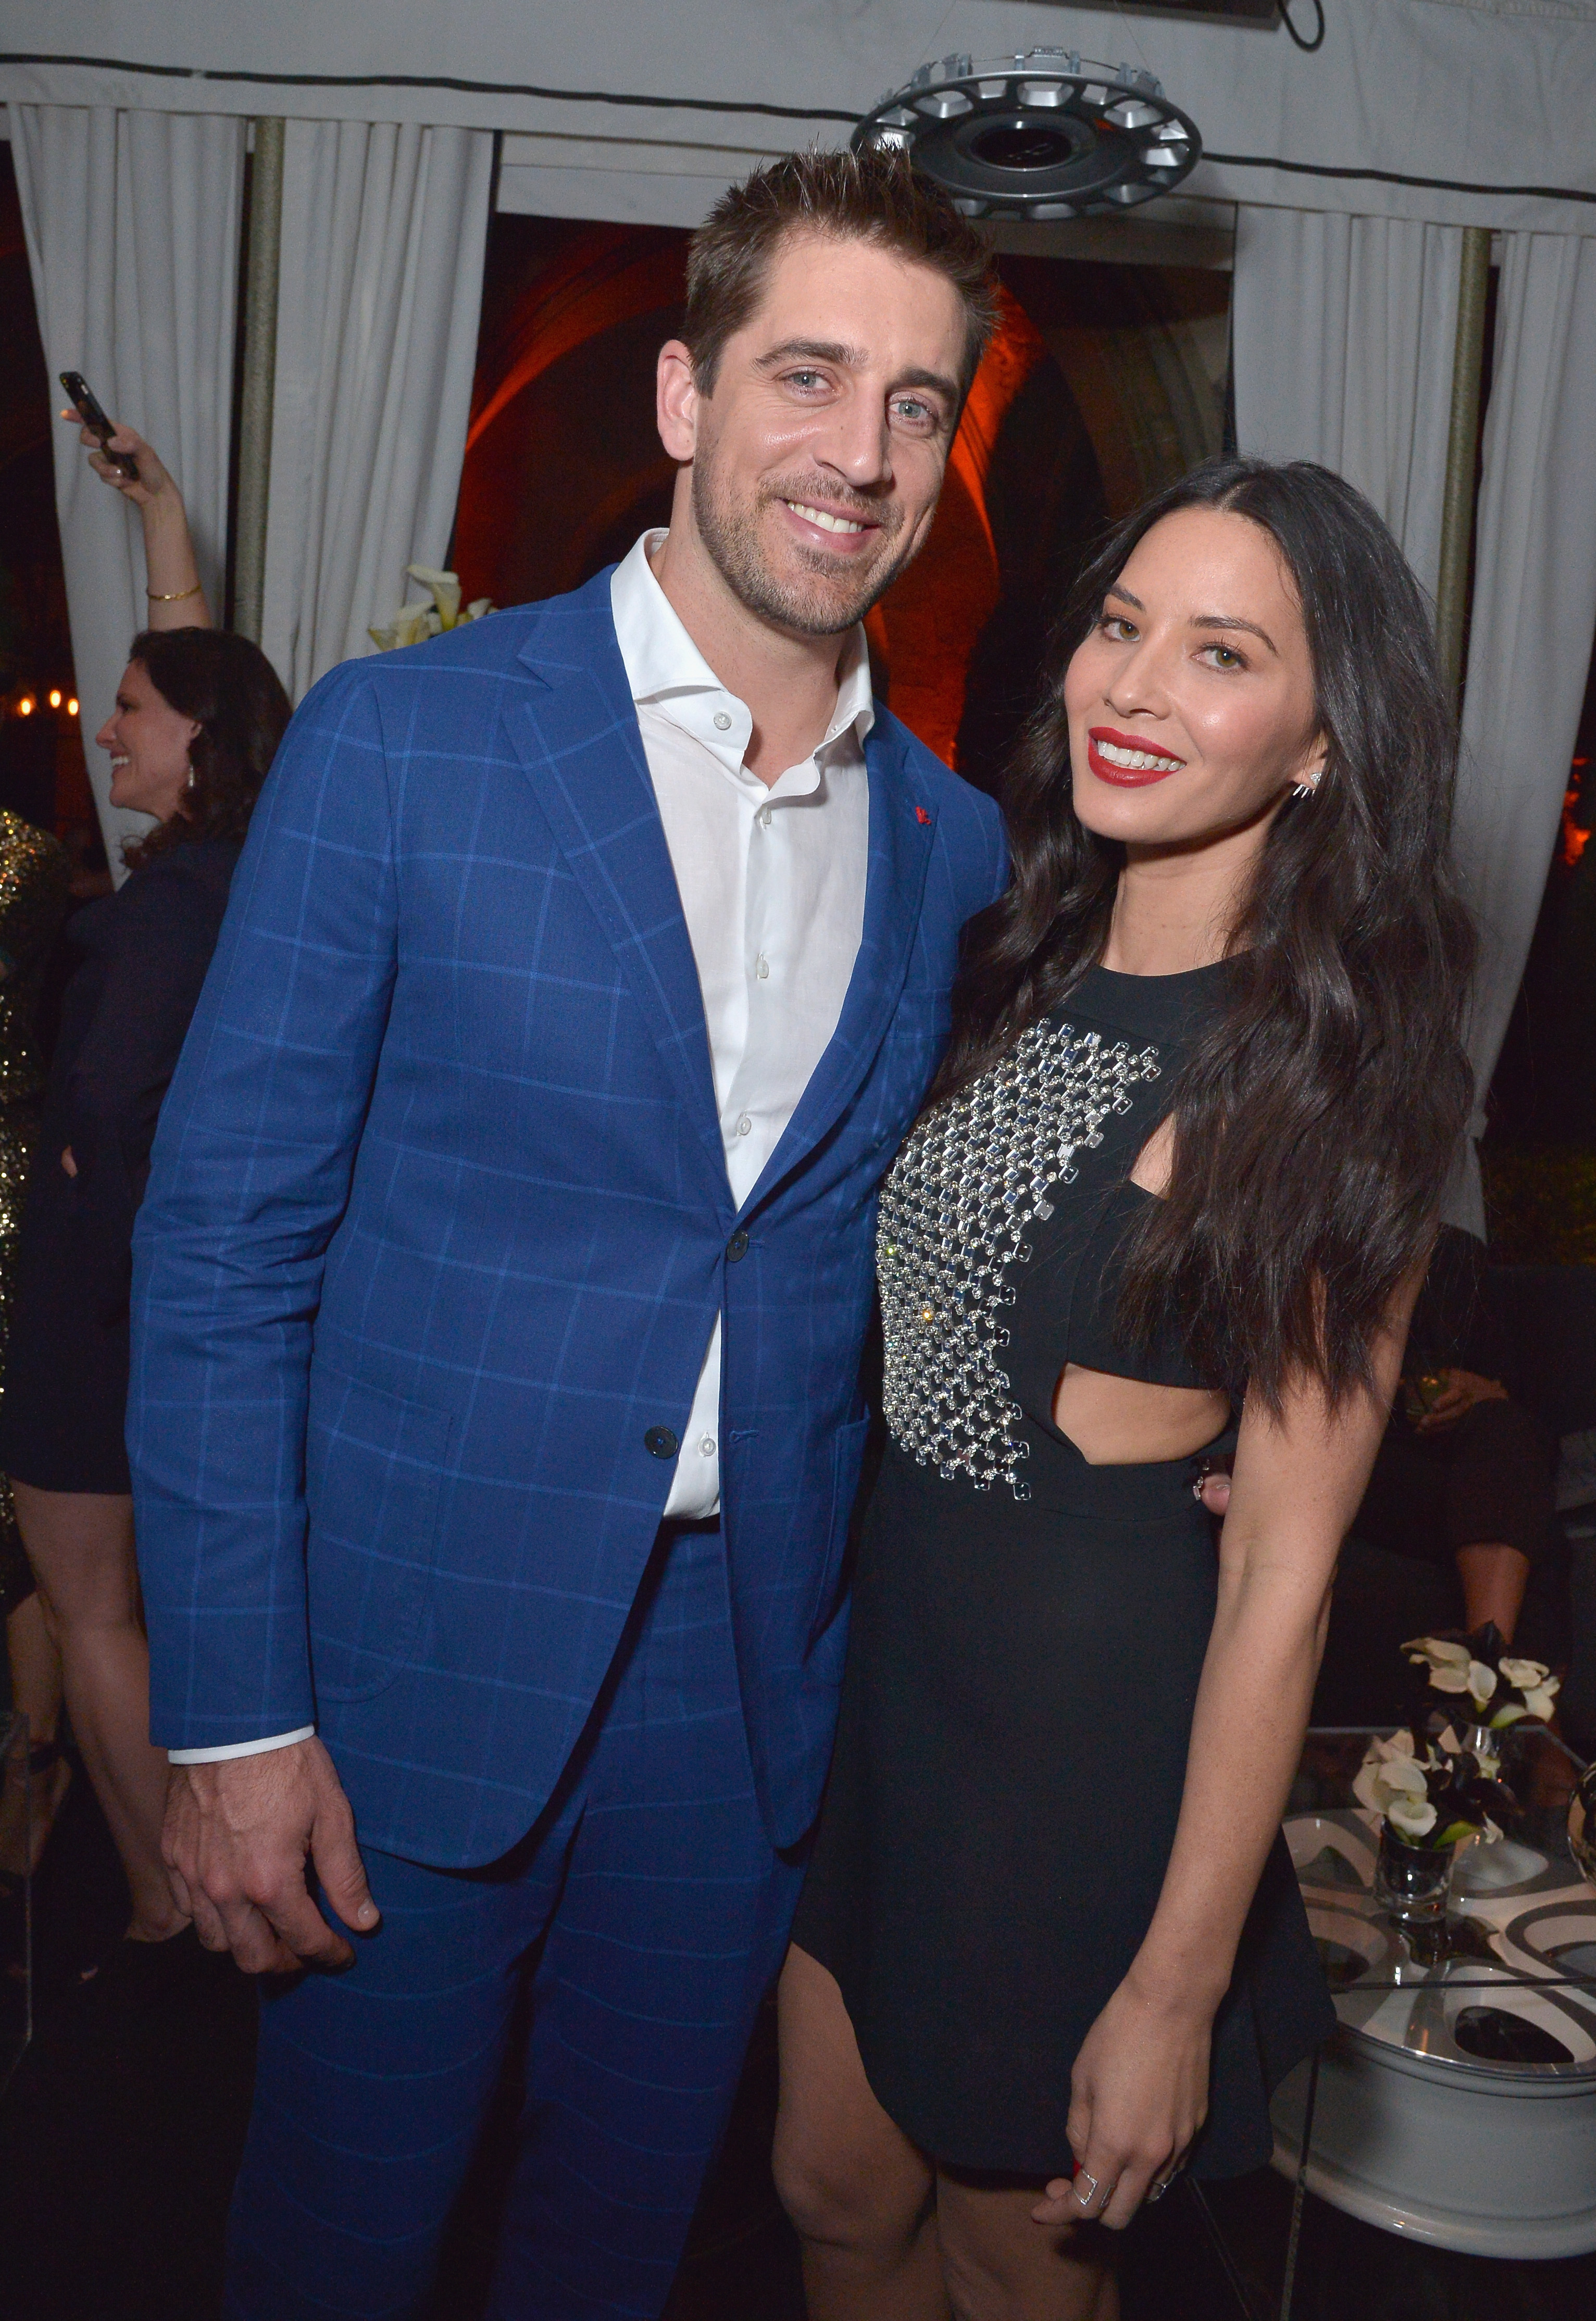 Olivia Munn implicated in Aaron and Jordan Rodgers' family feud